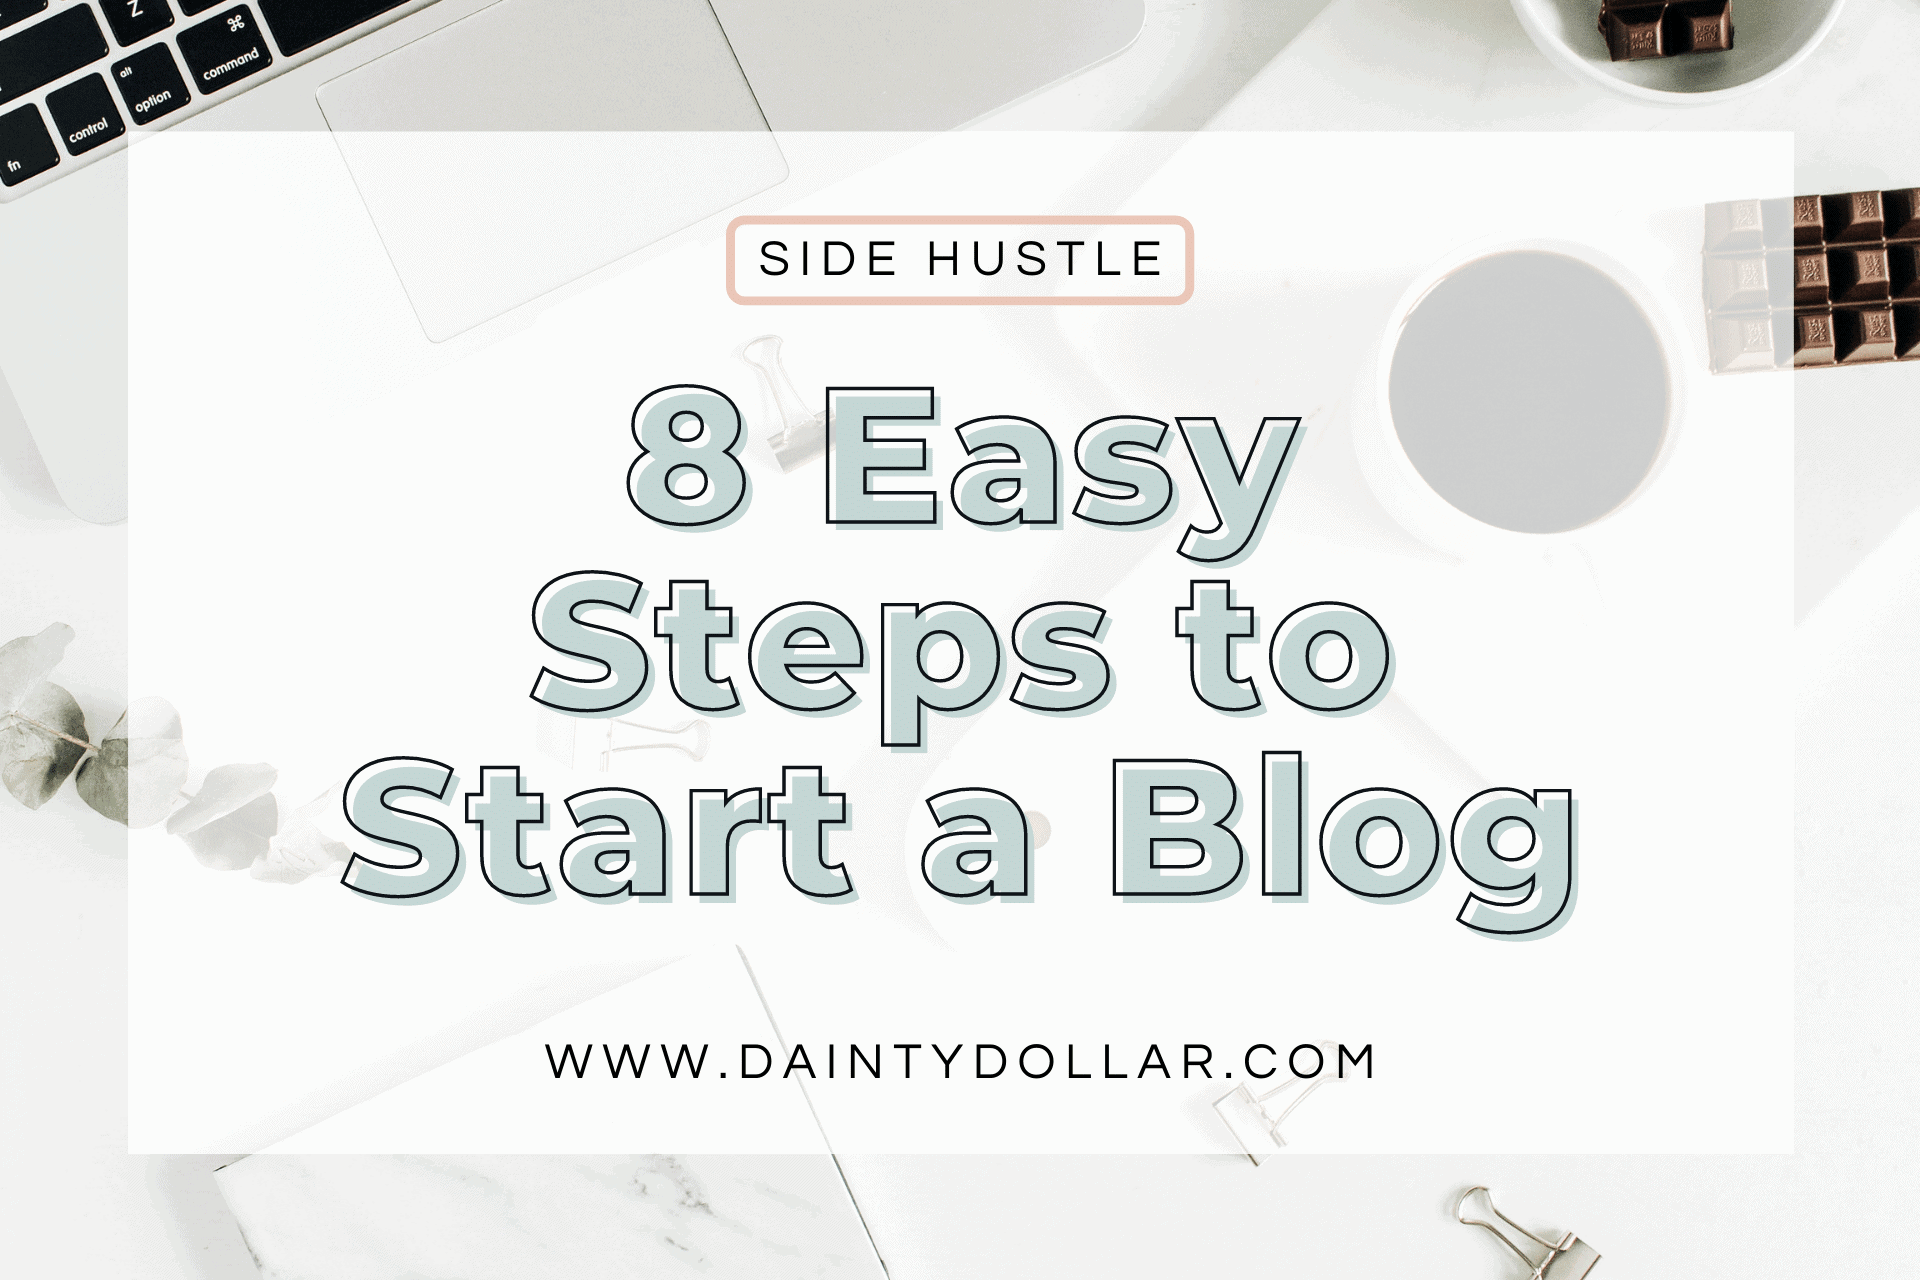 How to Start a Blog in 8 Easy Steps